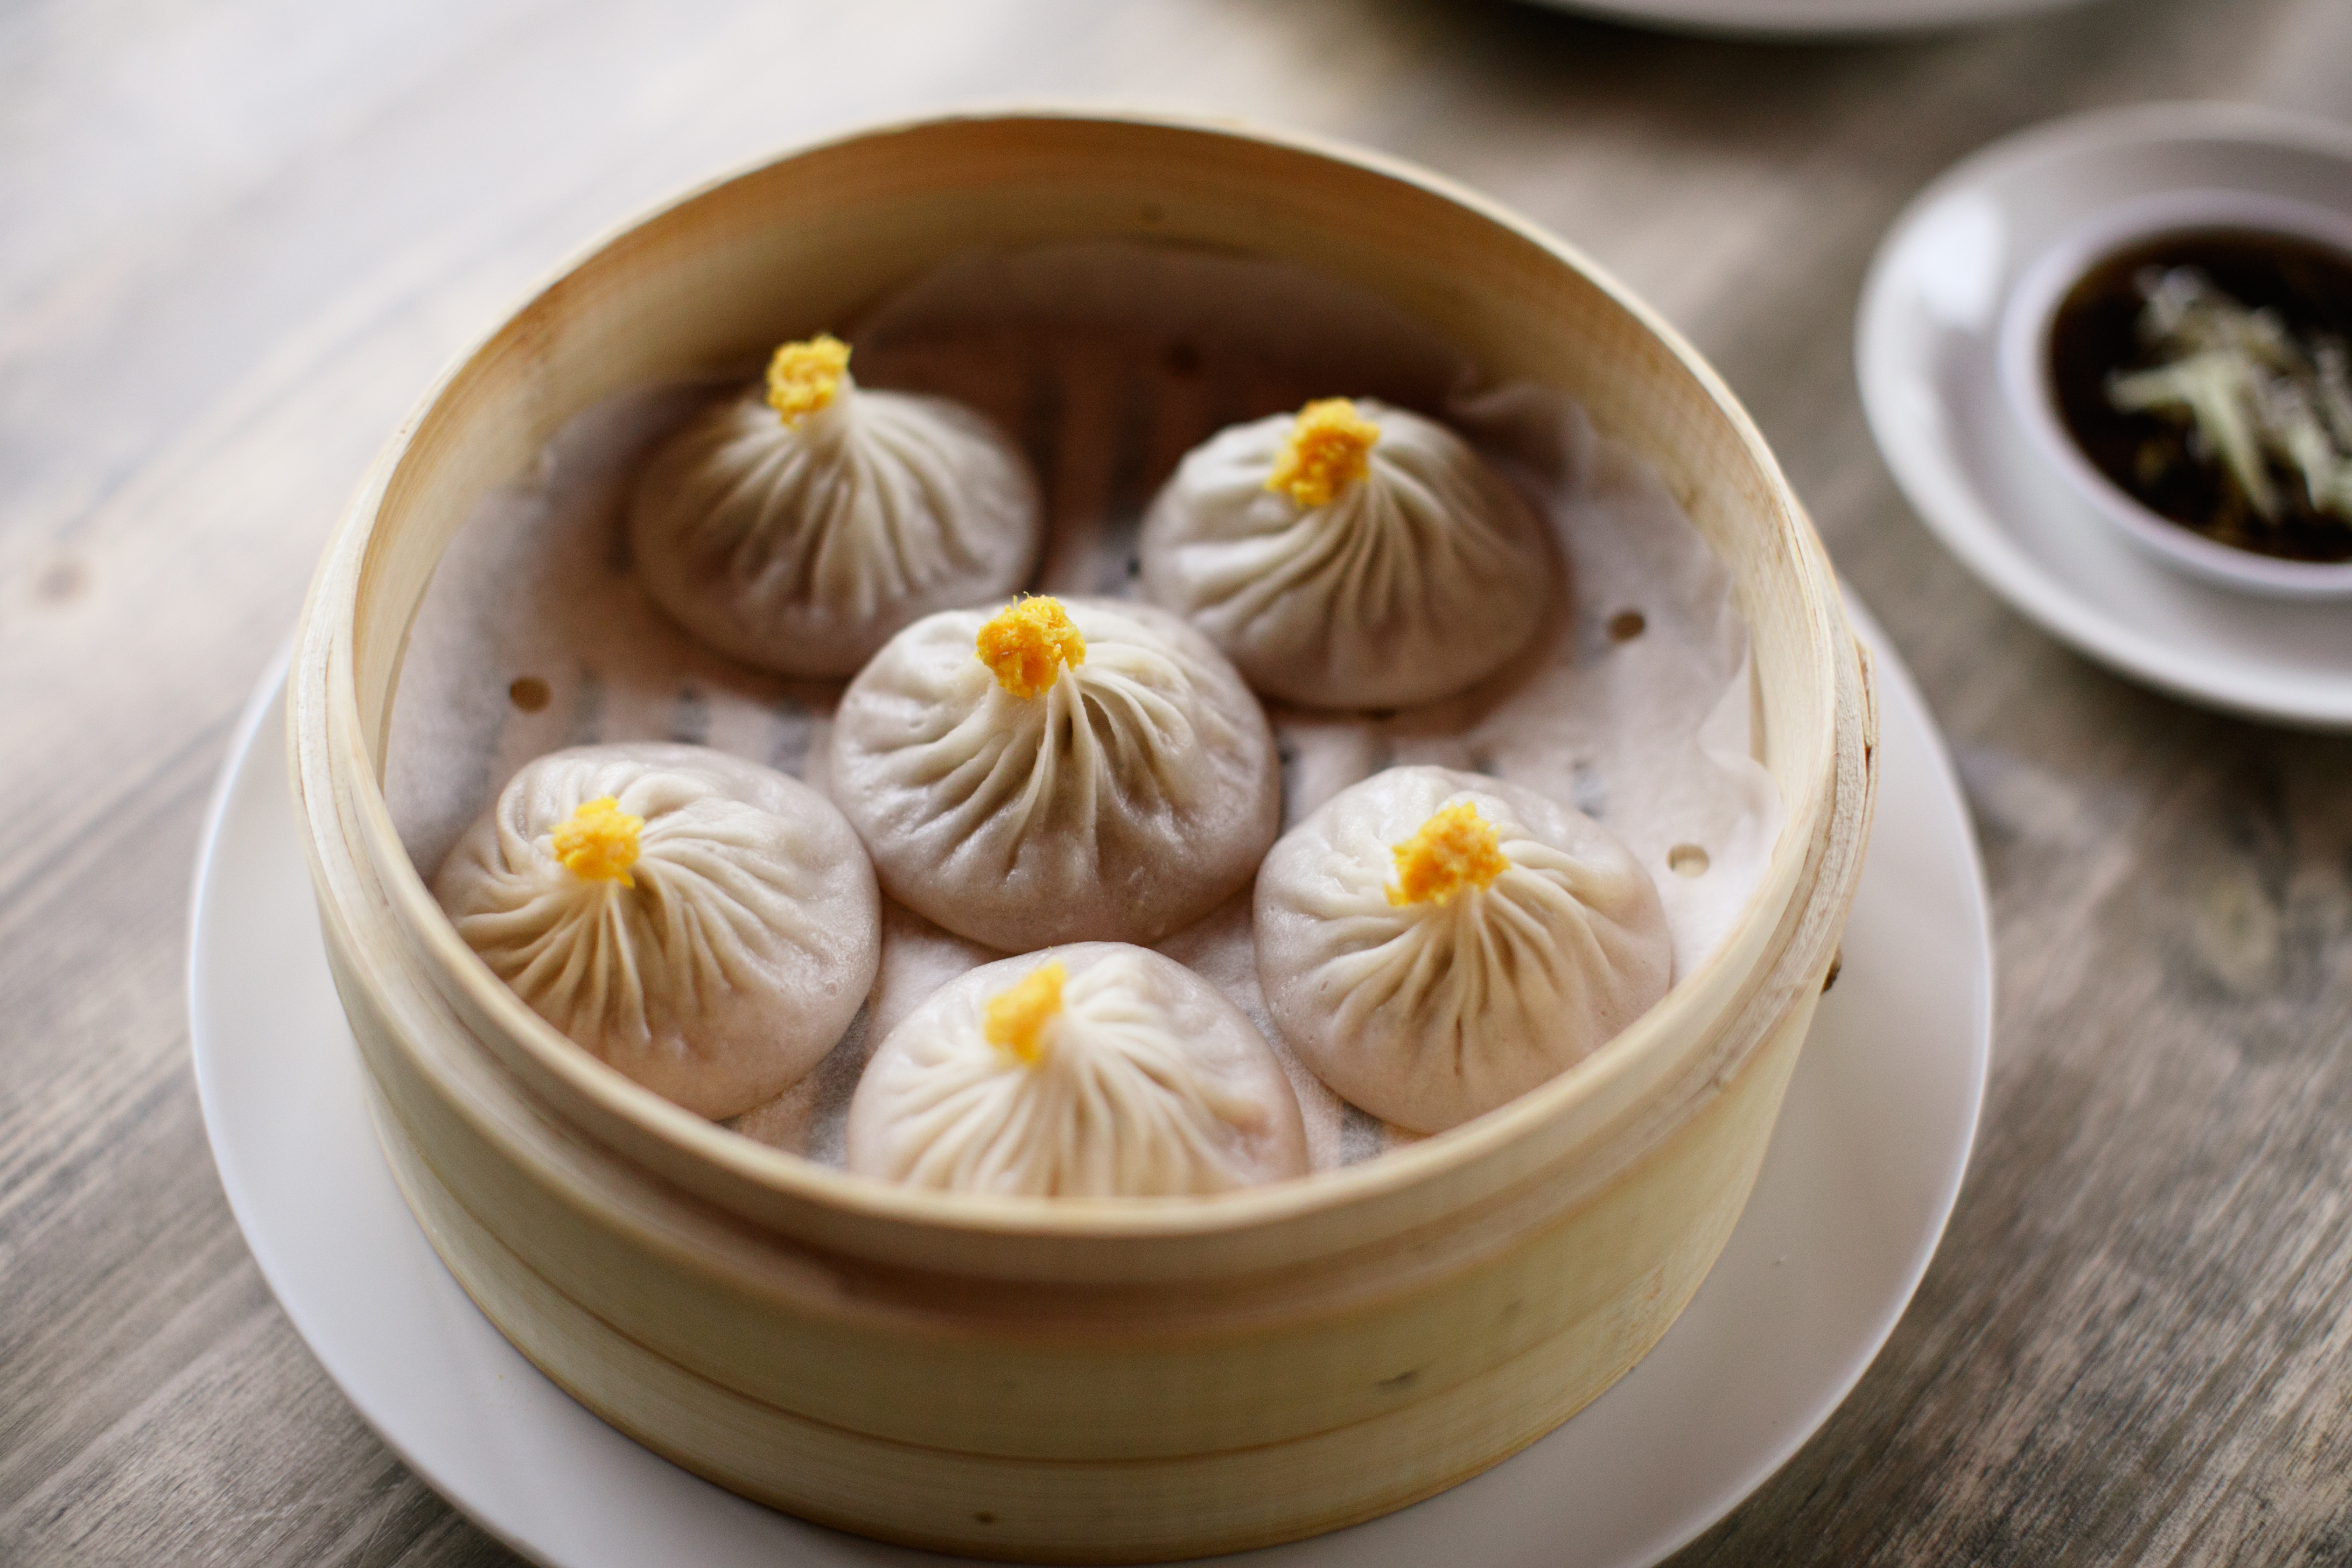 basket with six soup dumplings with yellow tips